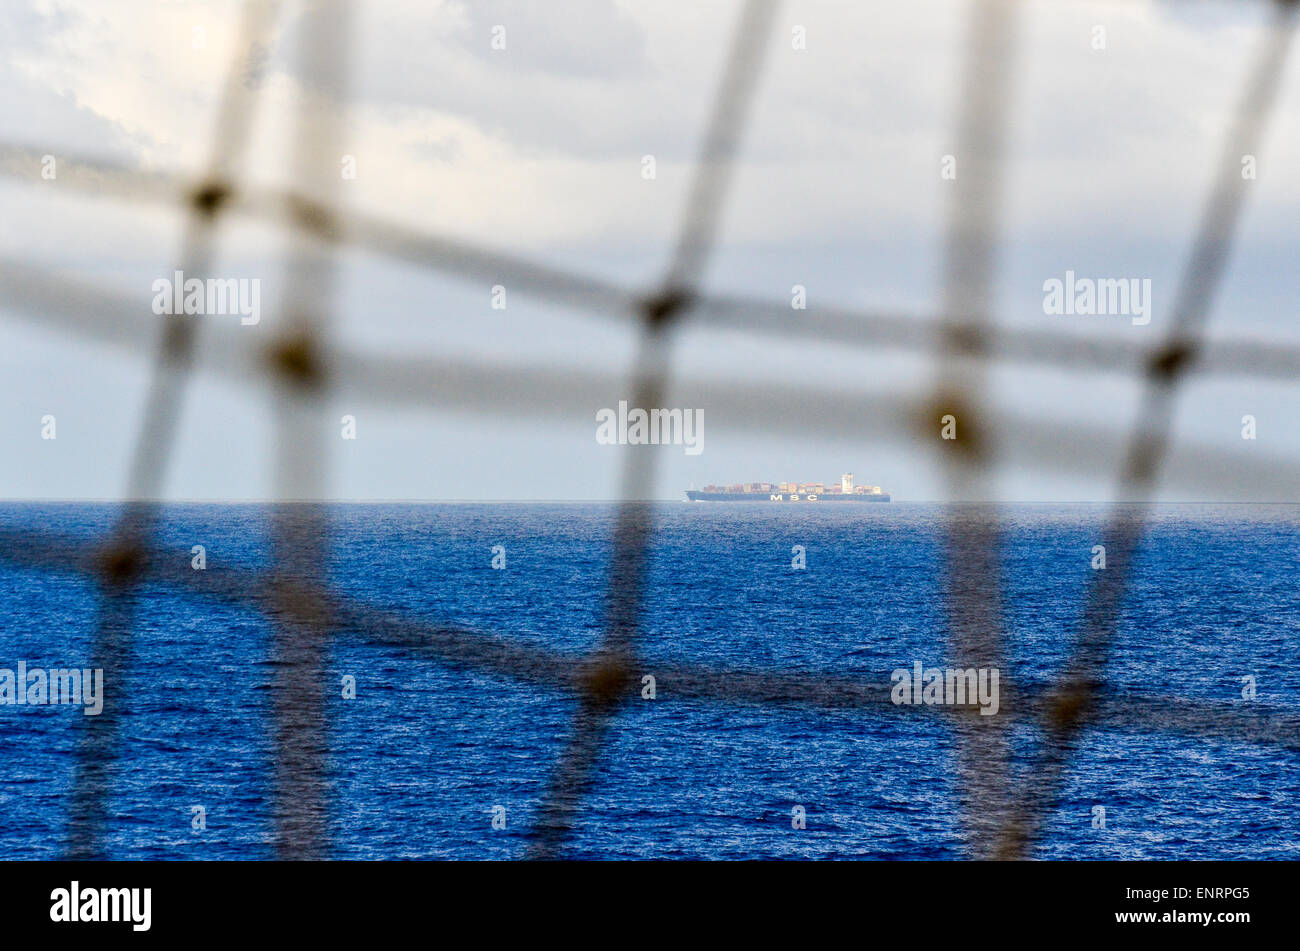 Container ship in the Atlantic ocean seen through a net - Stock Image